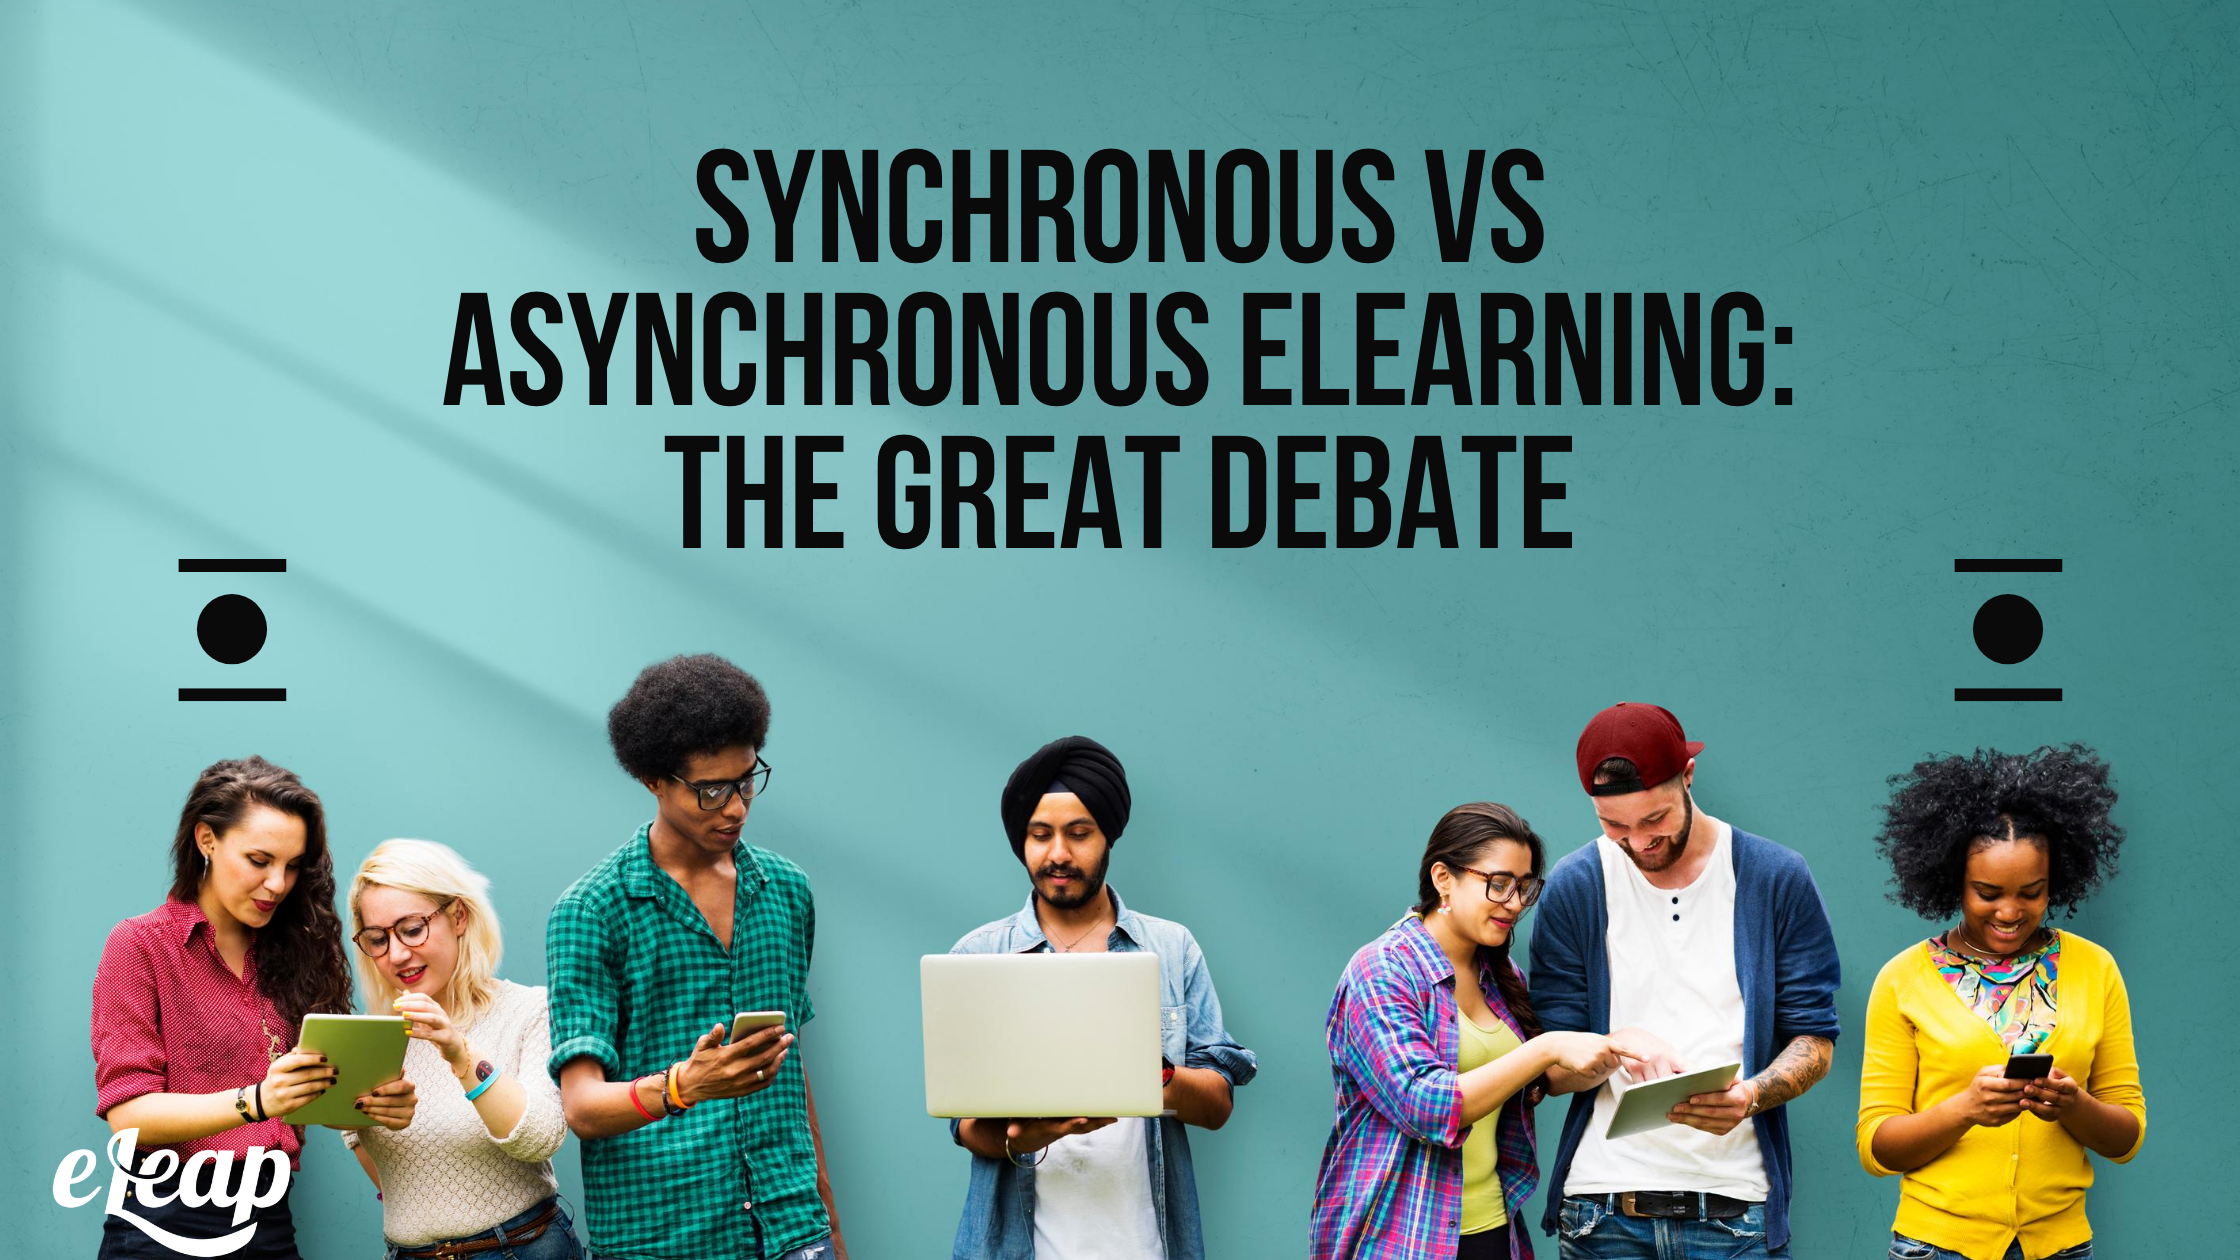 Synchronous vs Asynchronous eLearning: The Great Debate